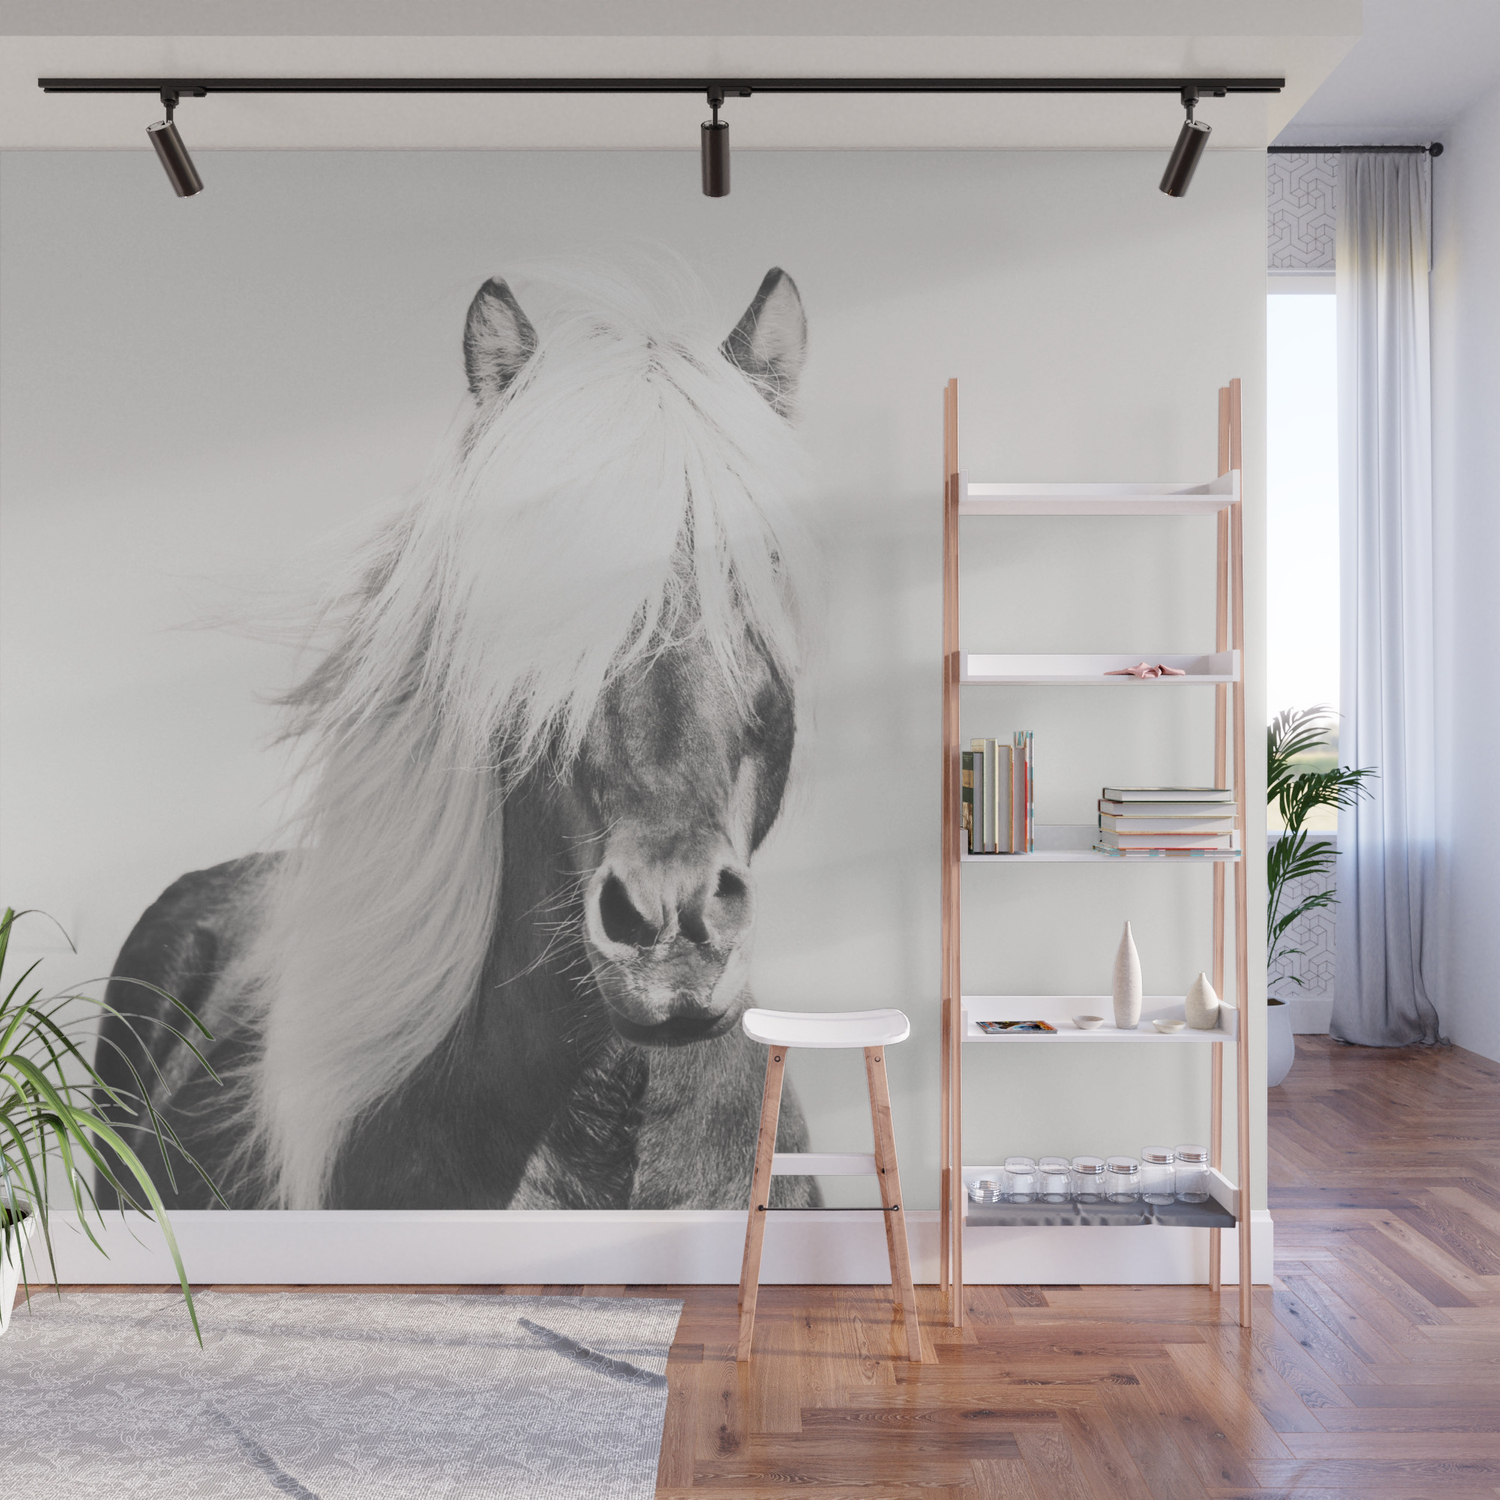 Bw Horse Horse Art Black And White Nordic Horse Horse Print Boho Decor Horse Photo Wall Mural By Northernedge Society6